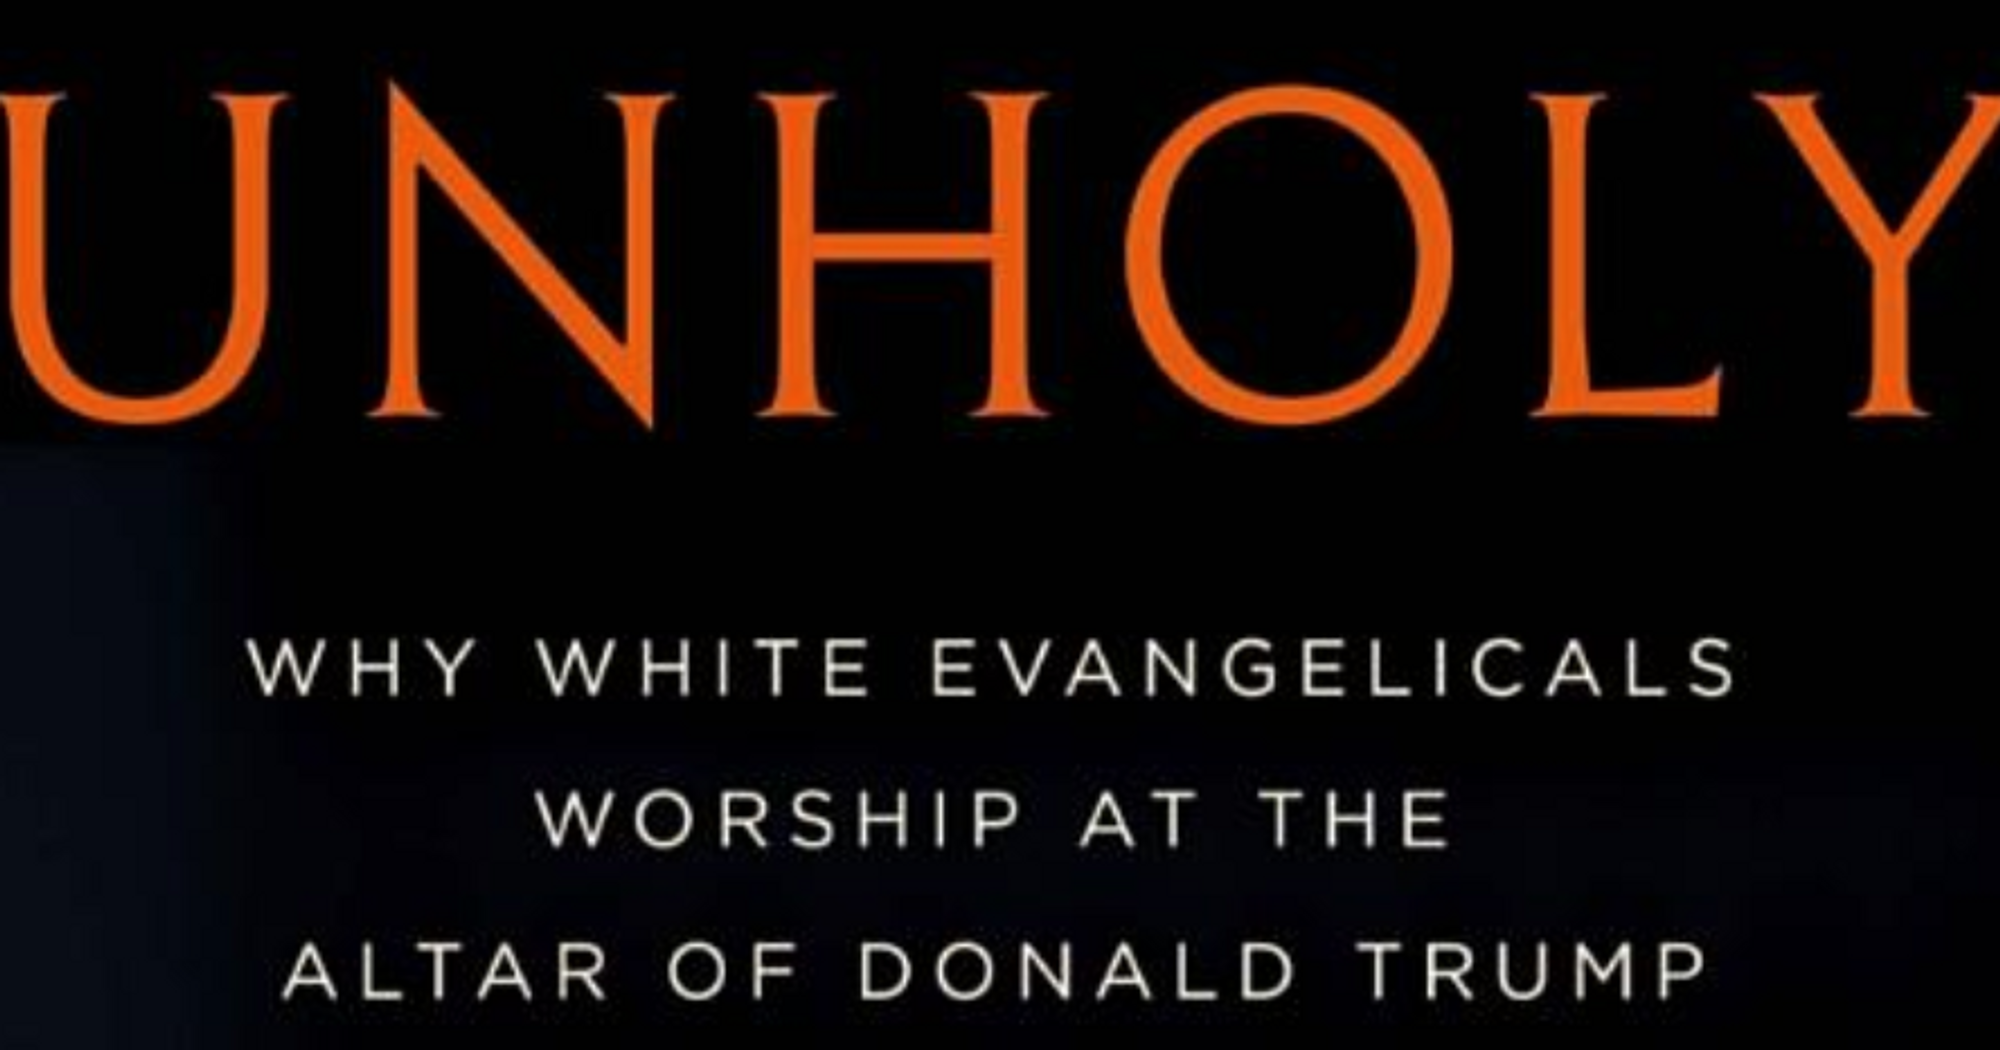 Excerpt: 'UNHOLY: Why White Evangelicals Worship At The Altar Of Donald Trump'